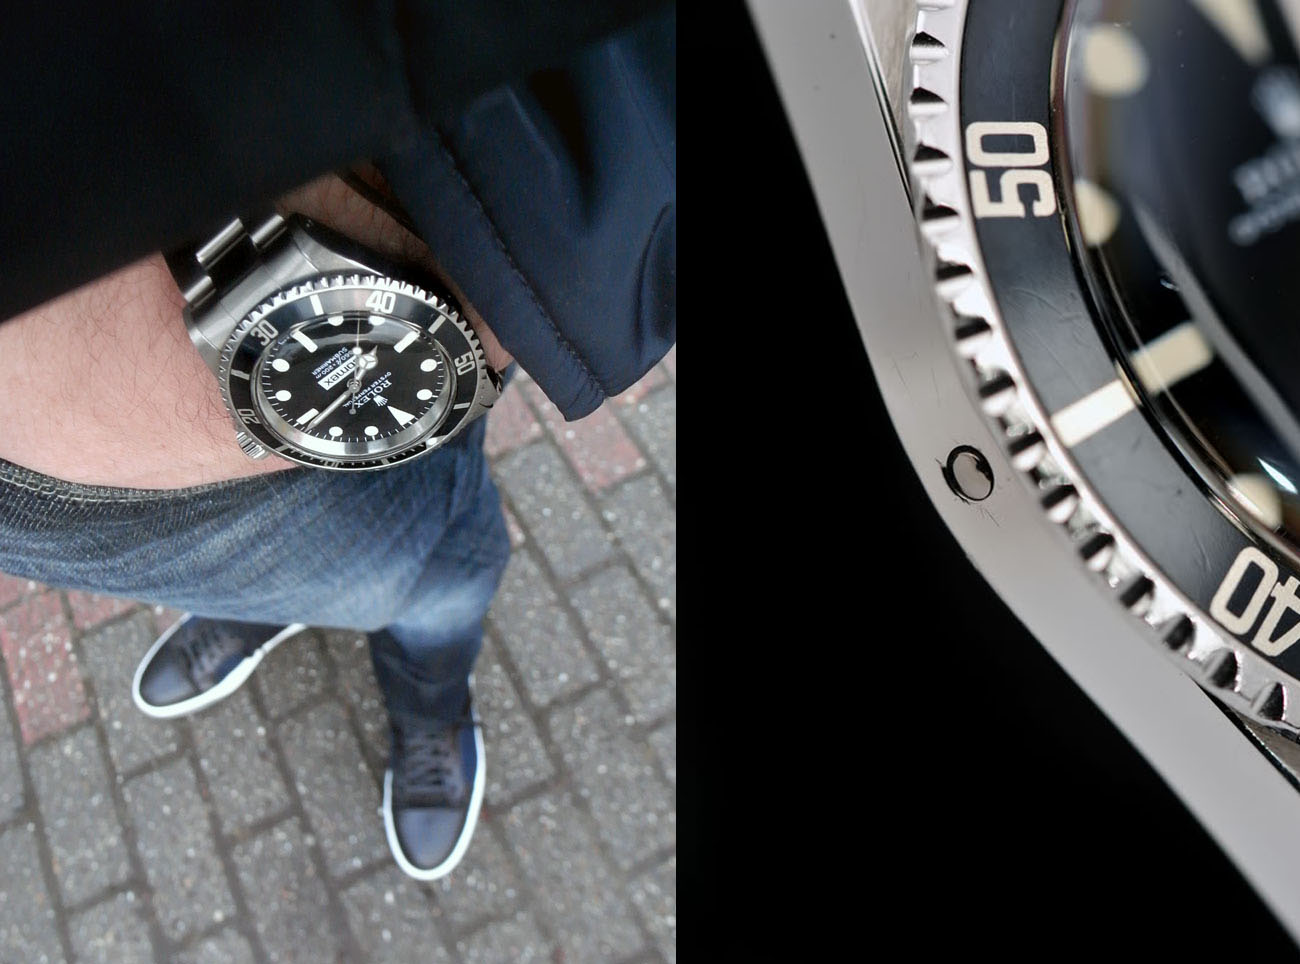 Vintage Rolex 5513 Comex Submariner Love - Article at Bulang and Sons